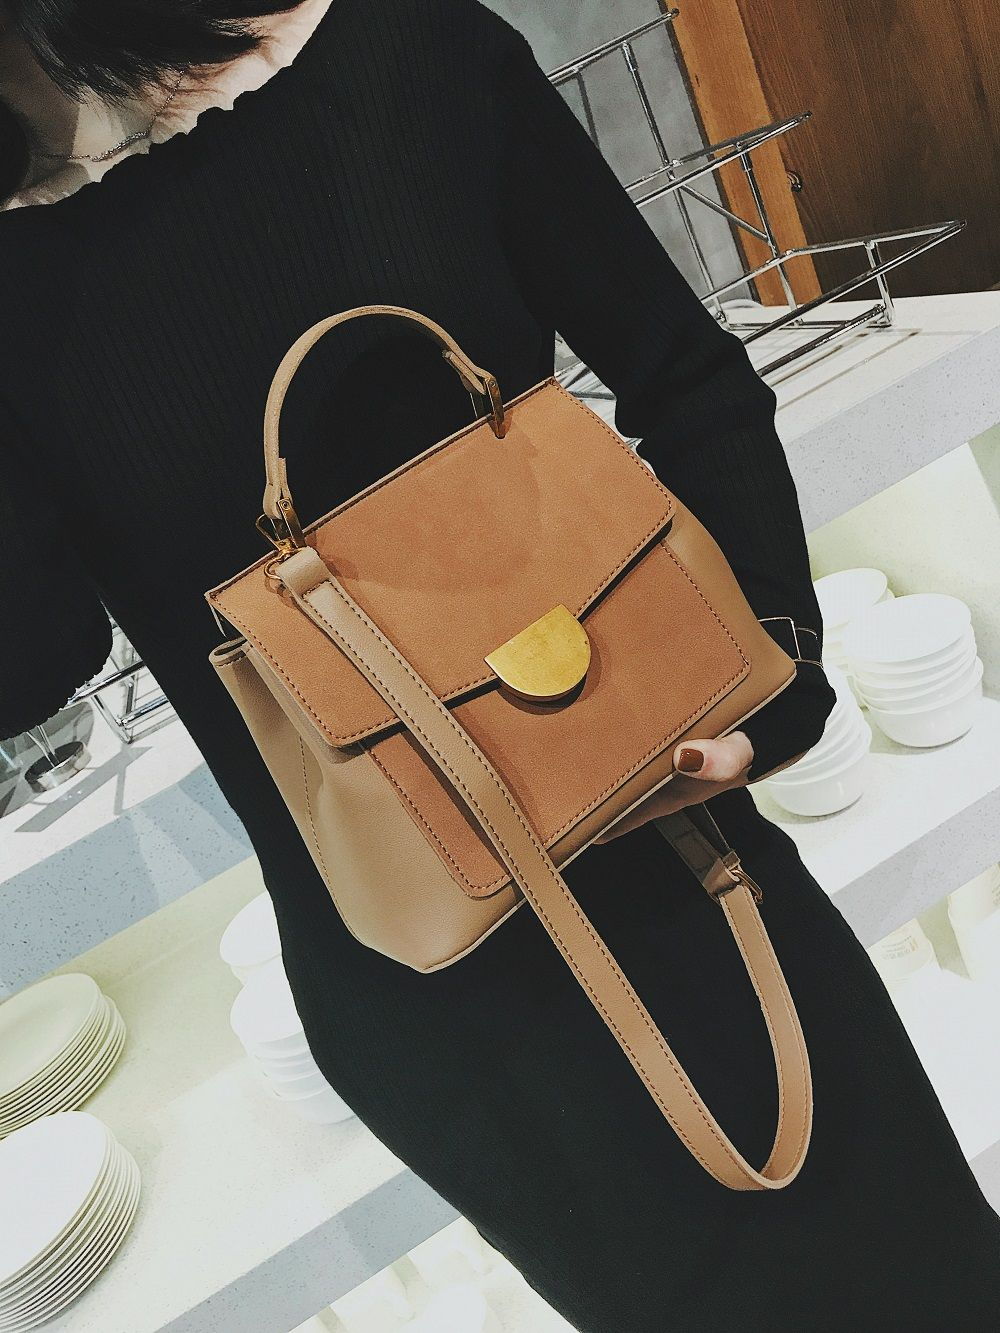 Atmospheric Wild Bag Female 2018 New Fashion Matte Leather Shoulder Messenger Bag Simple Commuter Handbag